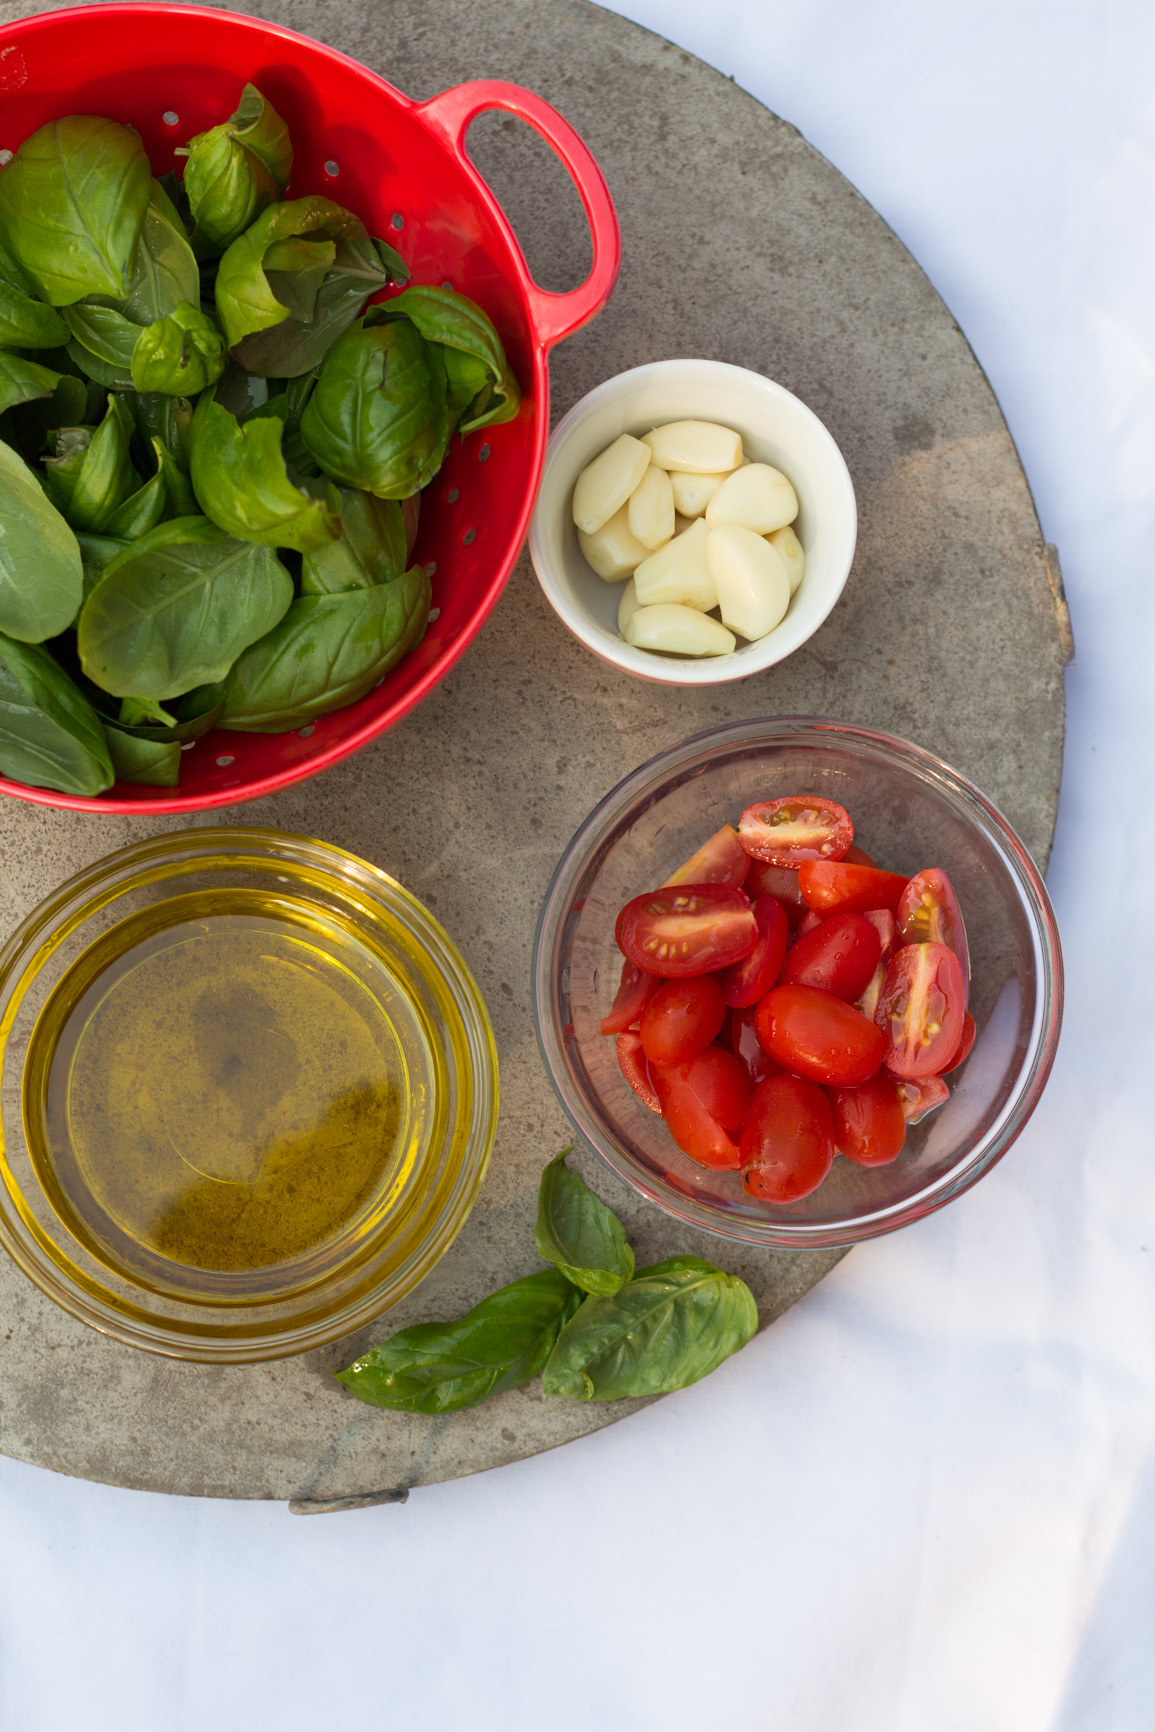 Ingredients (garlic, basil, tomato, olive oil) on a tray to make pistou paste